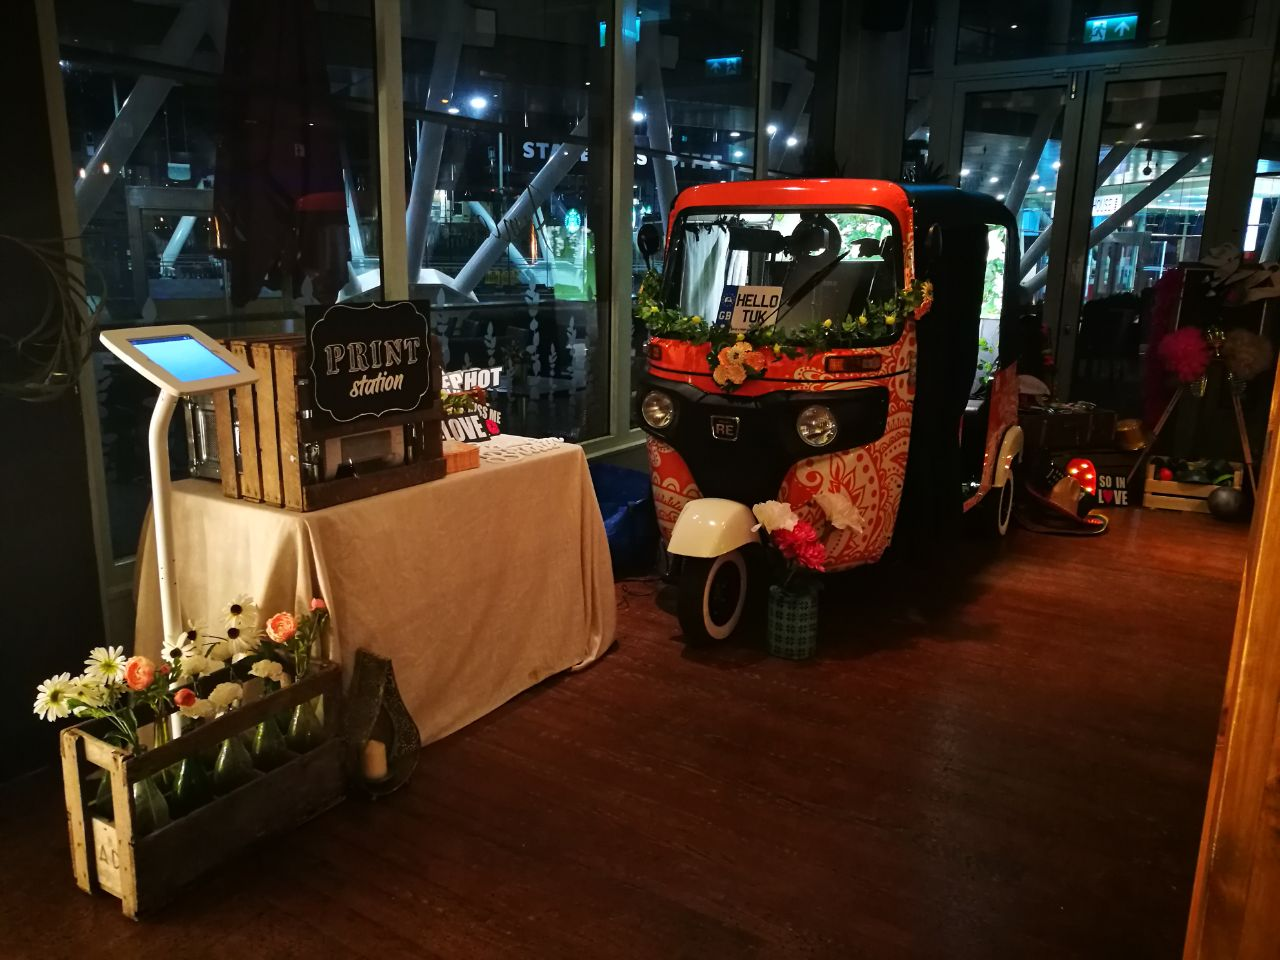 Extra Booth Time - Additional hire time can be added to keep the party rolling and is charged at a fixed hourly rate and must be agreed in advance when booking.